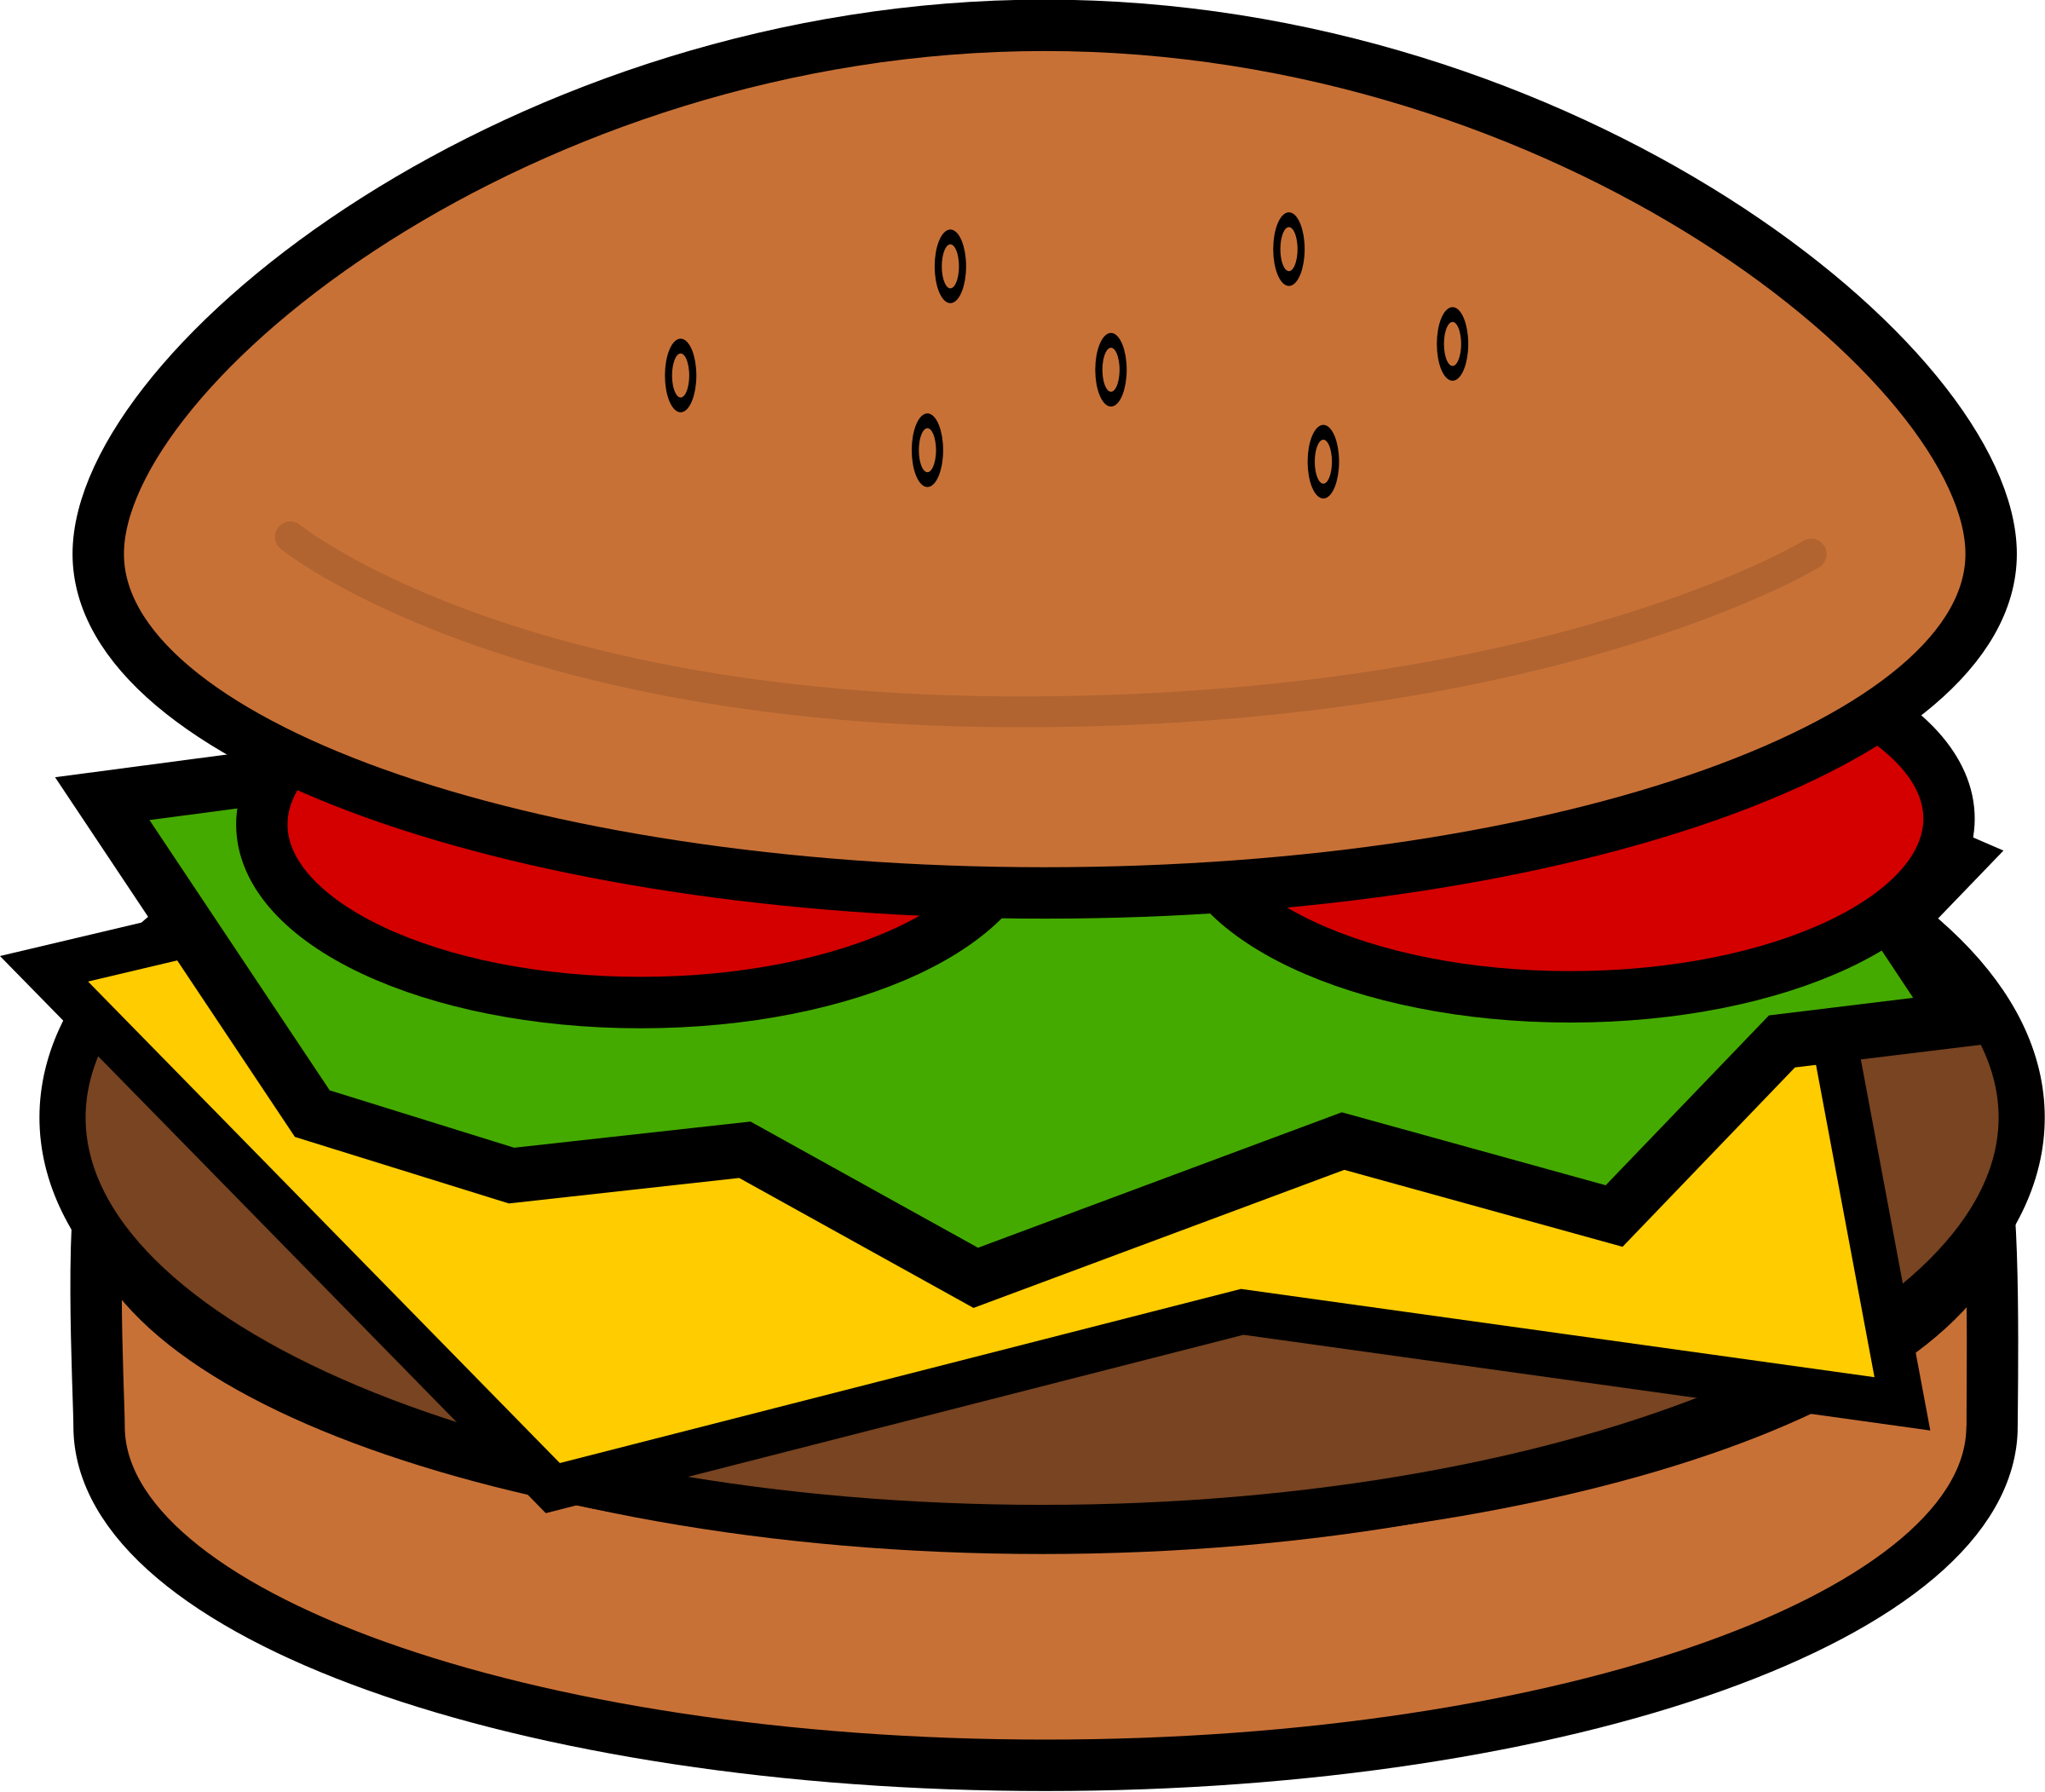 Clip Art Hamburger Clip Art clipart hamburger big image png